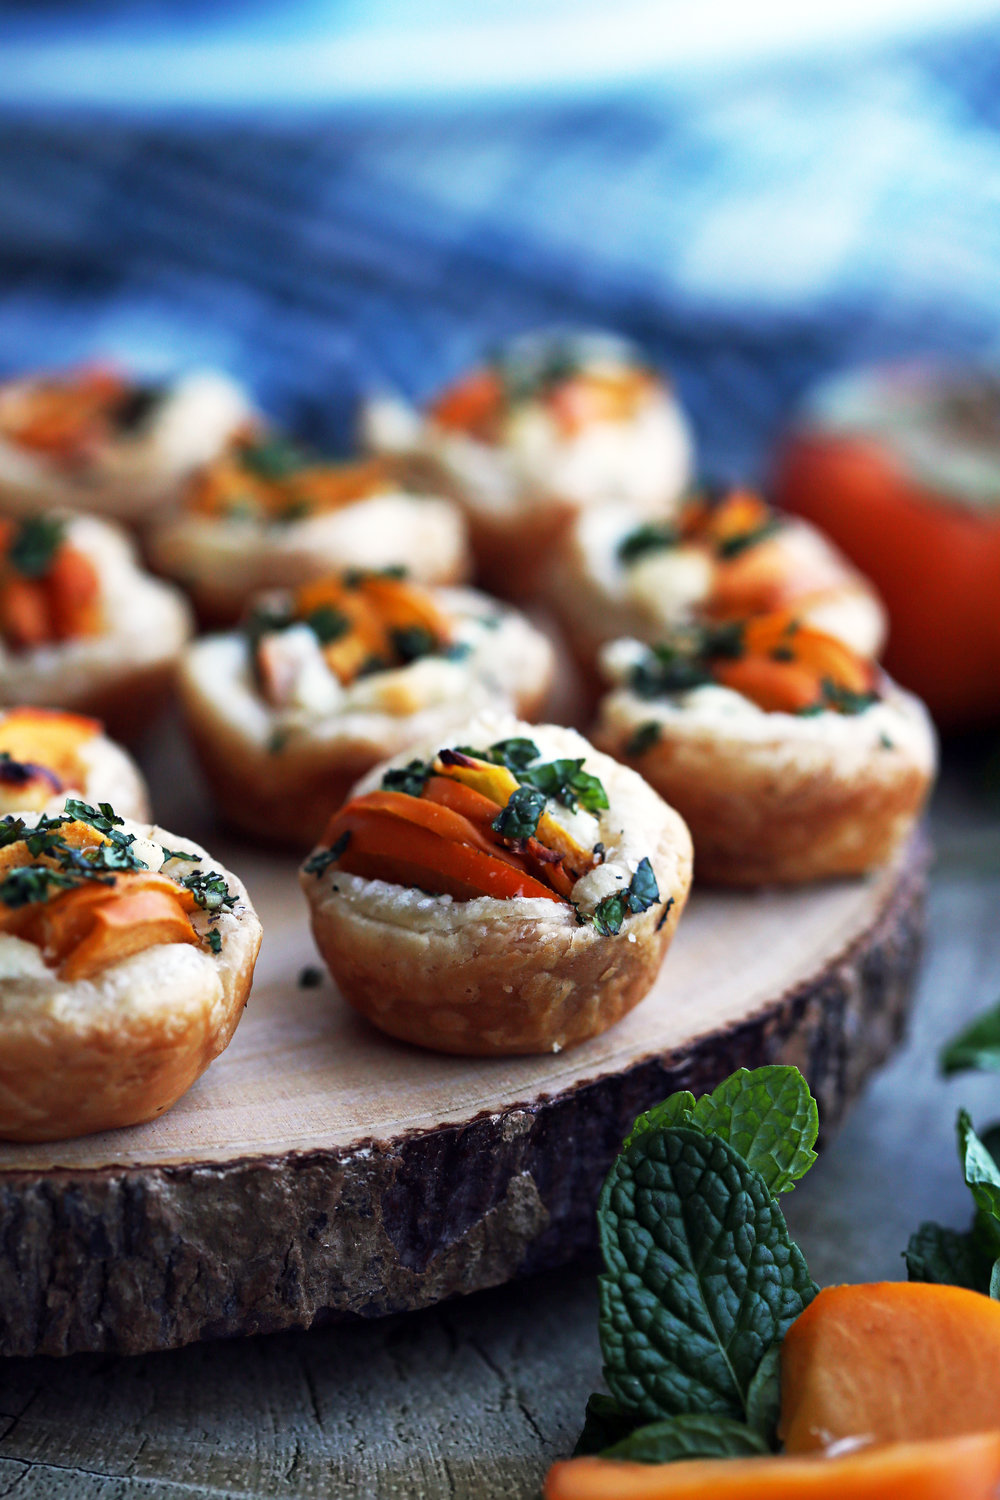 A closeup of a Persimmon Goat Cheese Tartlet surrounded by more tartlets on a wooden platter.